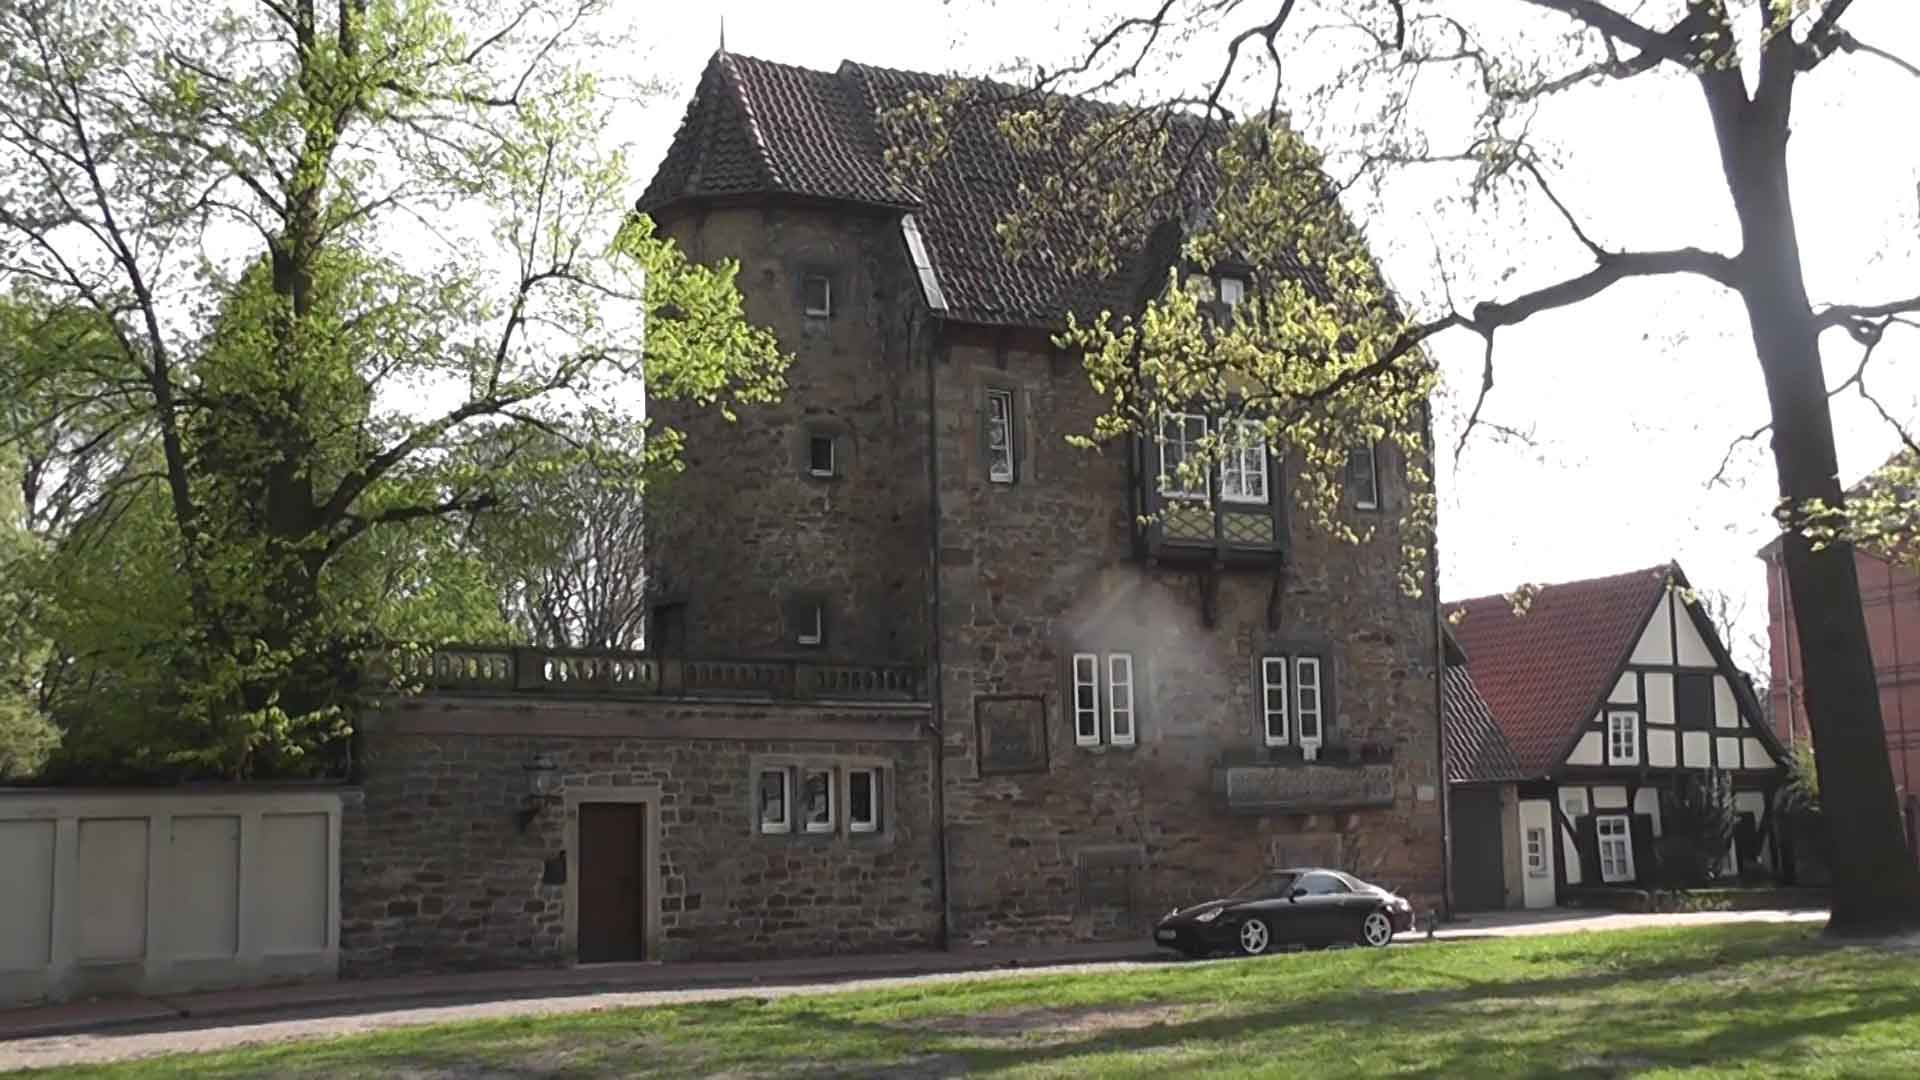 Hollesche Haus / Röbingsturm